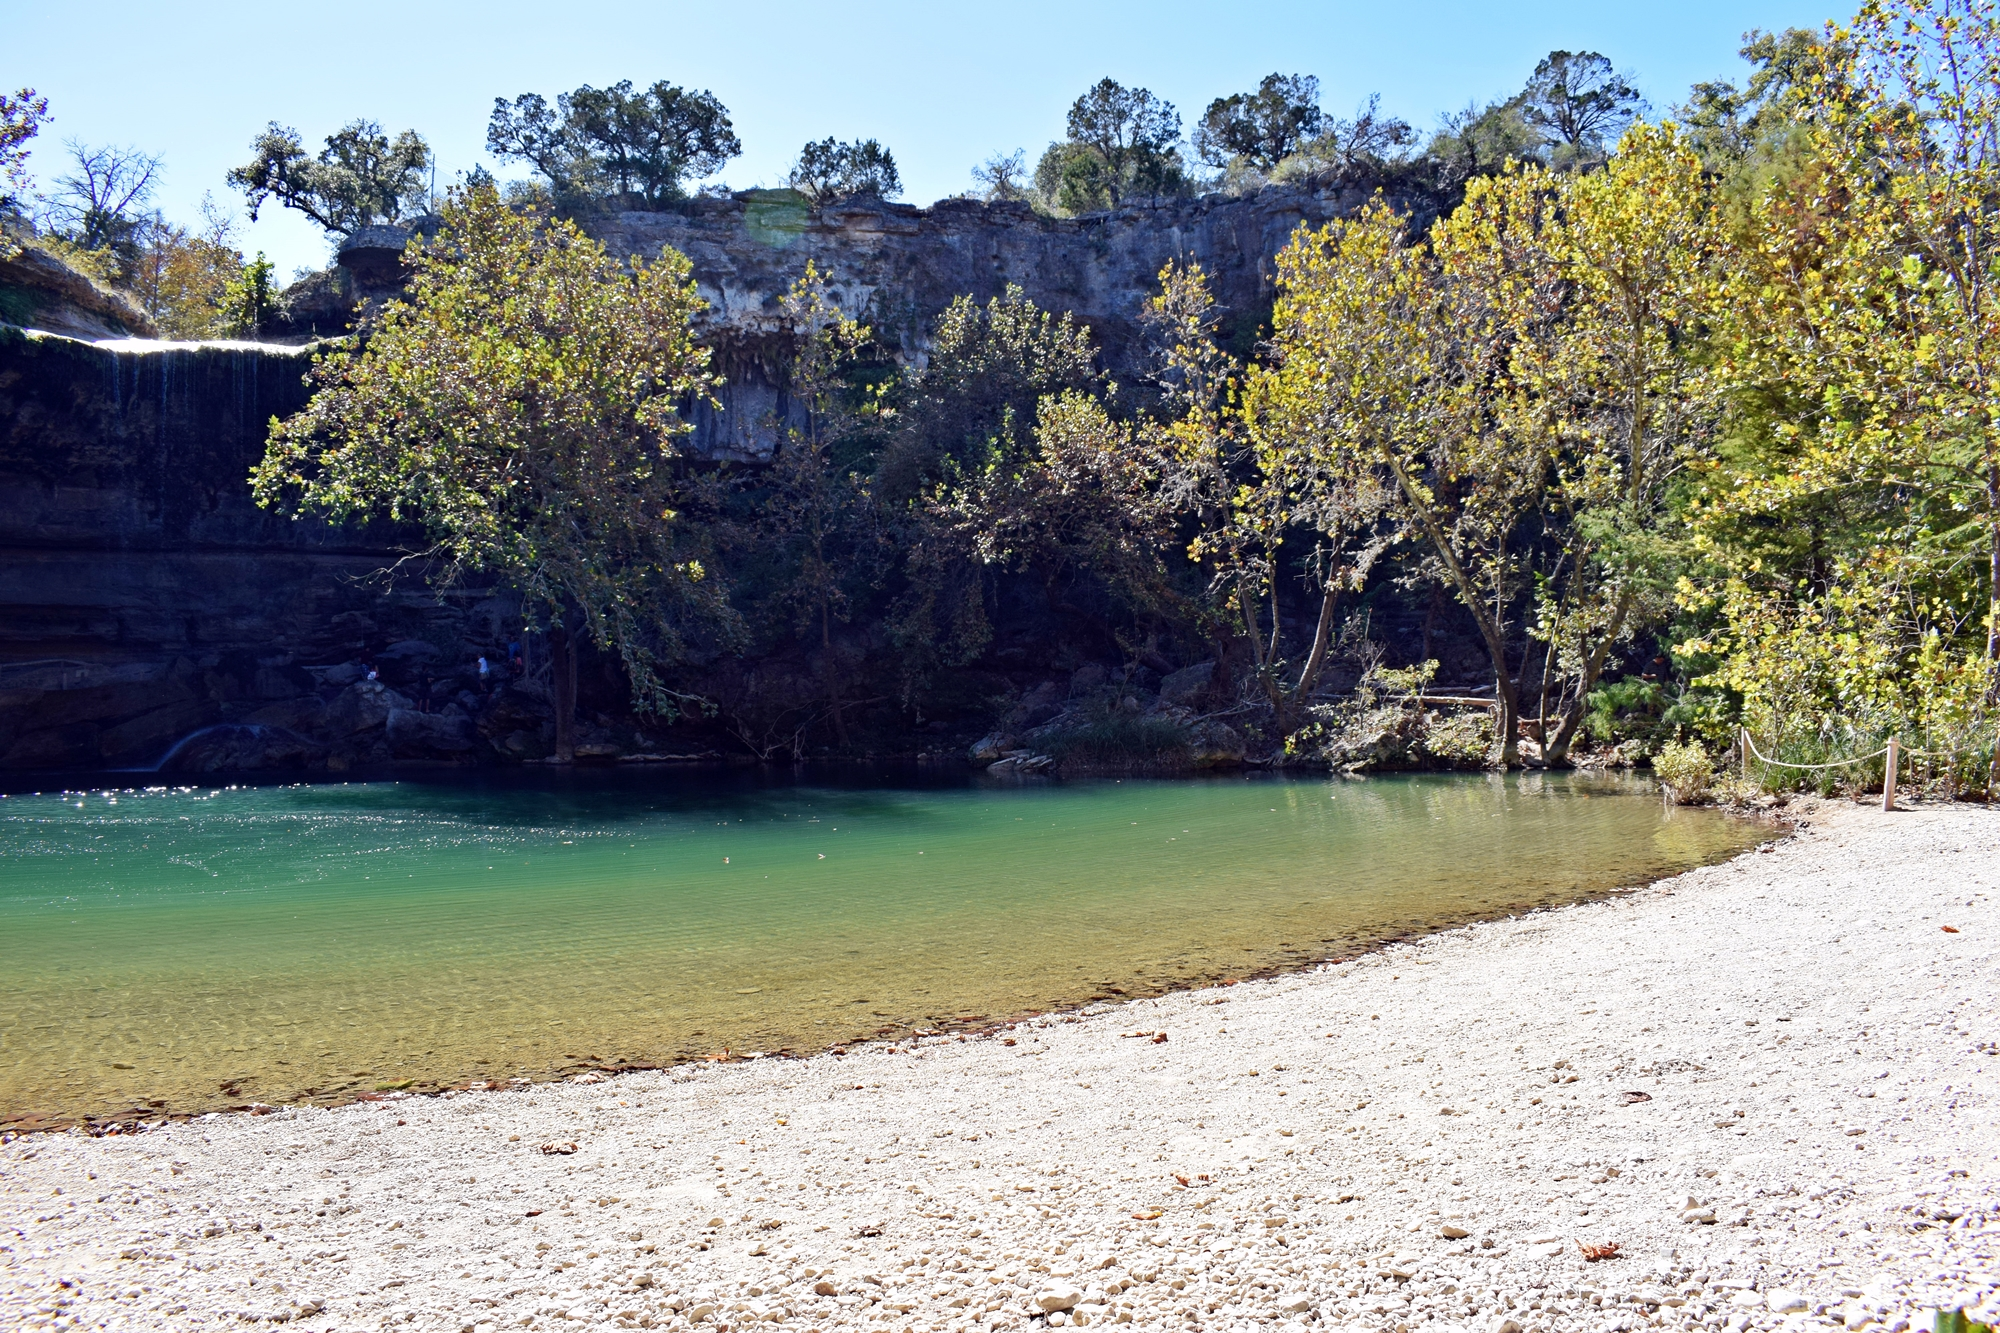 Hamilton Pool Preserve is a historic swimming hole which was designated a preserve by the Travis County Commissioners Court in 1990 Located 34 mile upstream from